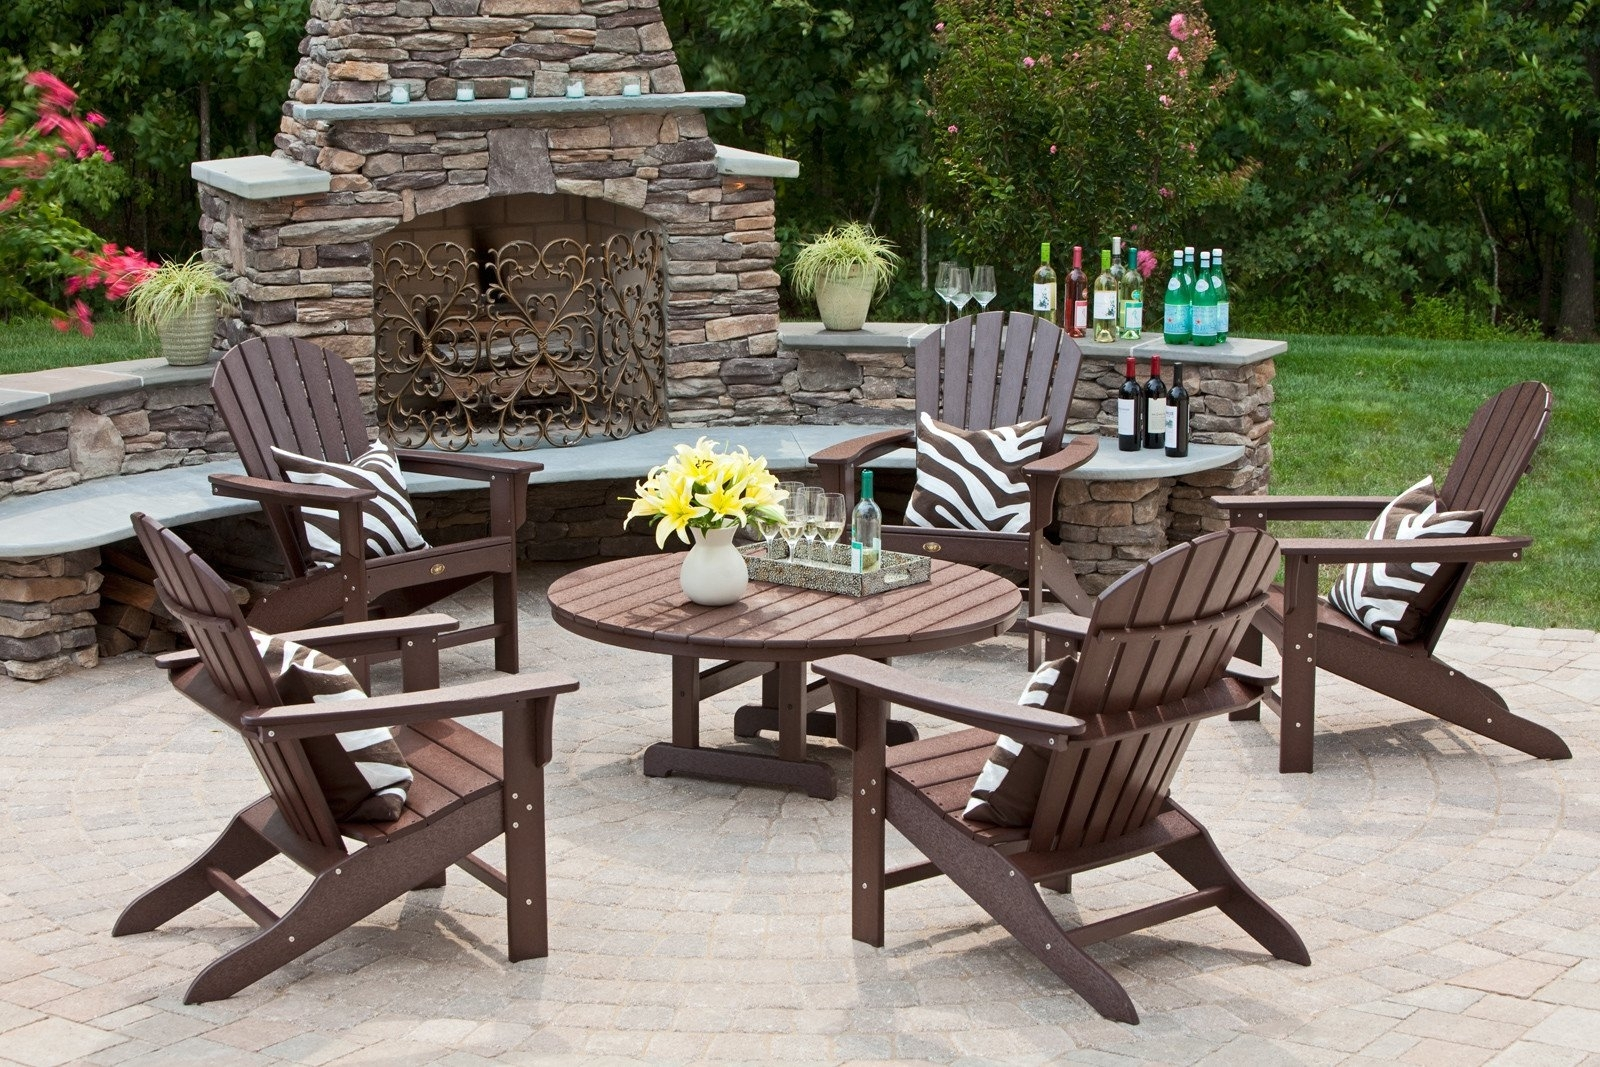 Patio : Patio Stones Onriture And Easy Conversation Sets Clearance With Regard To Well Liked Sears Patio Furniture Conversation Sets (View 7 of 15)